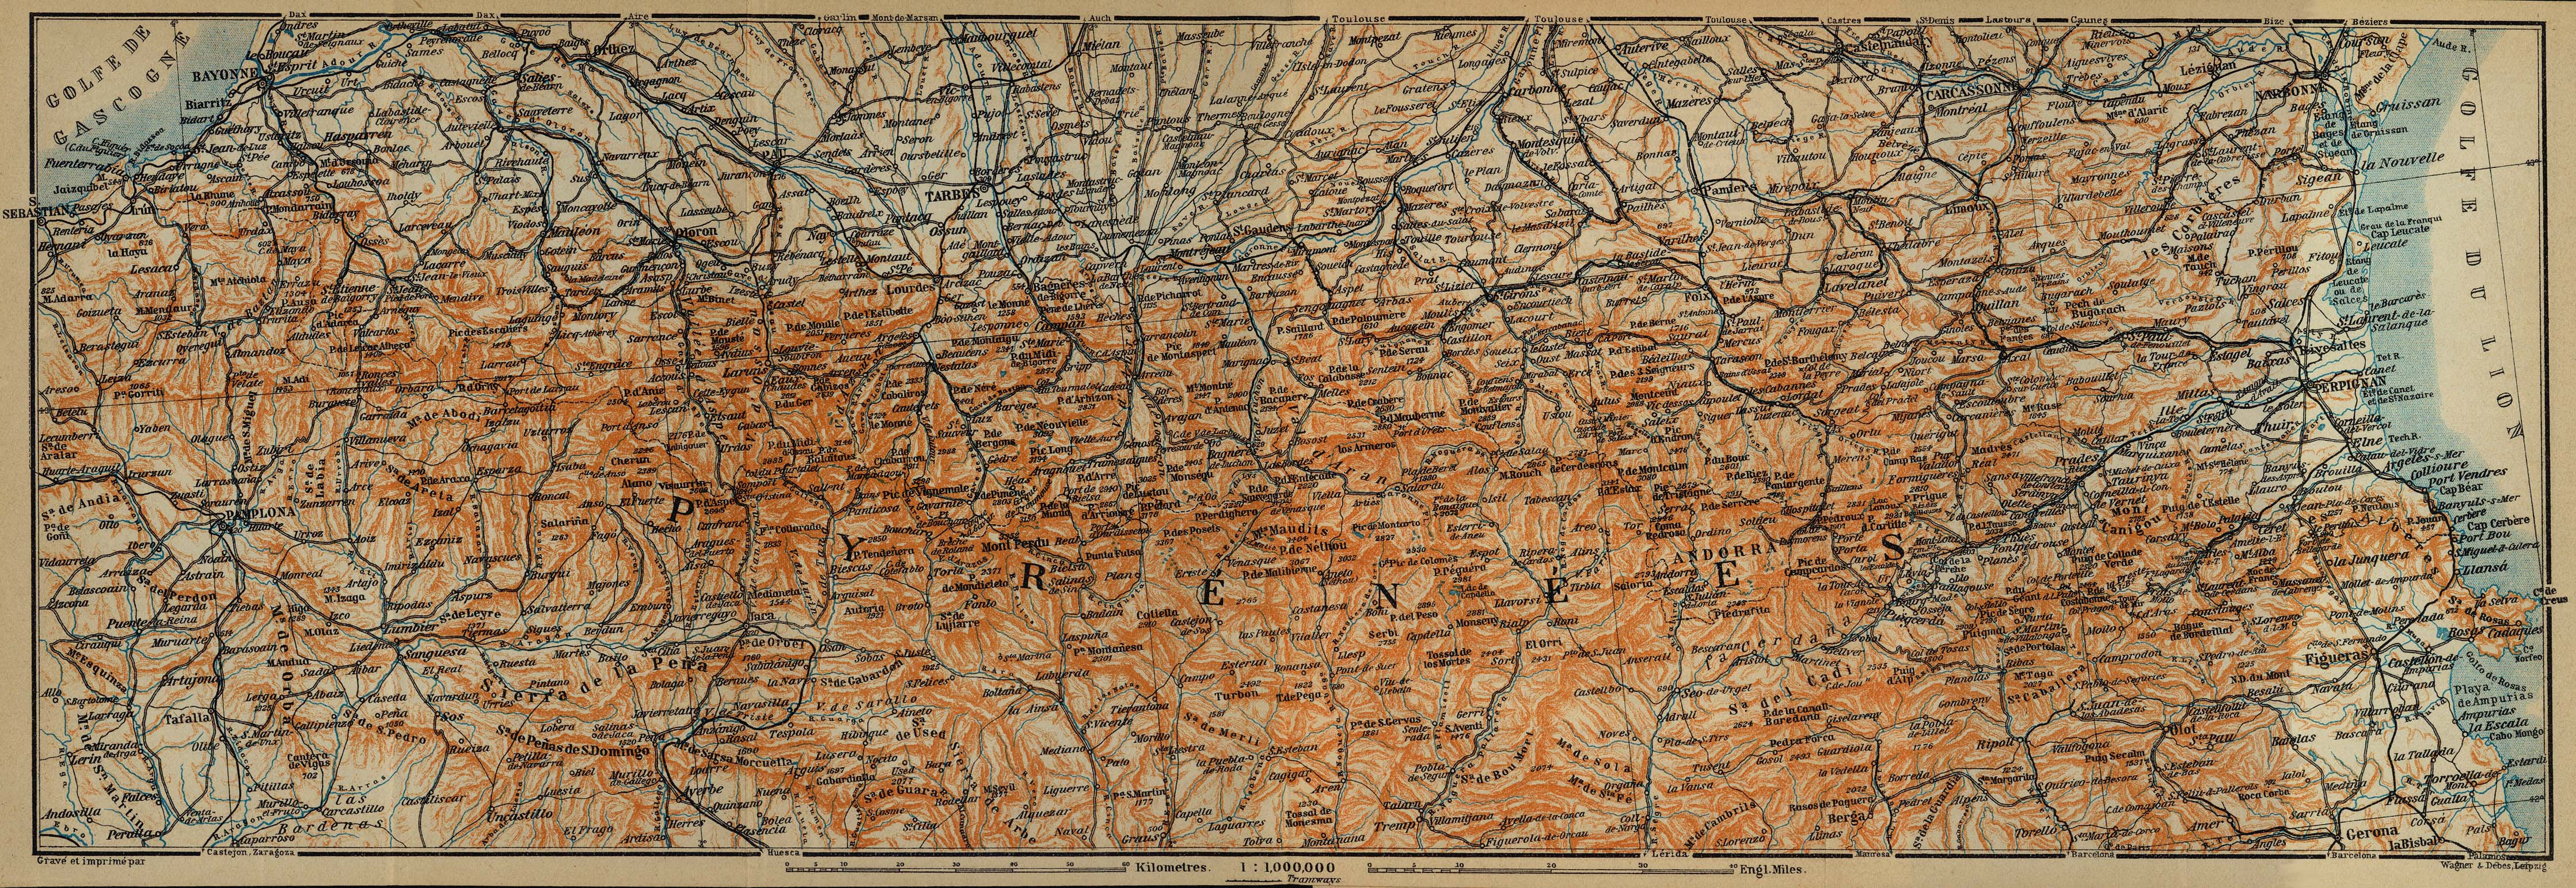 The Pyrenees Map, France 1914